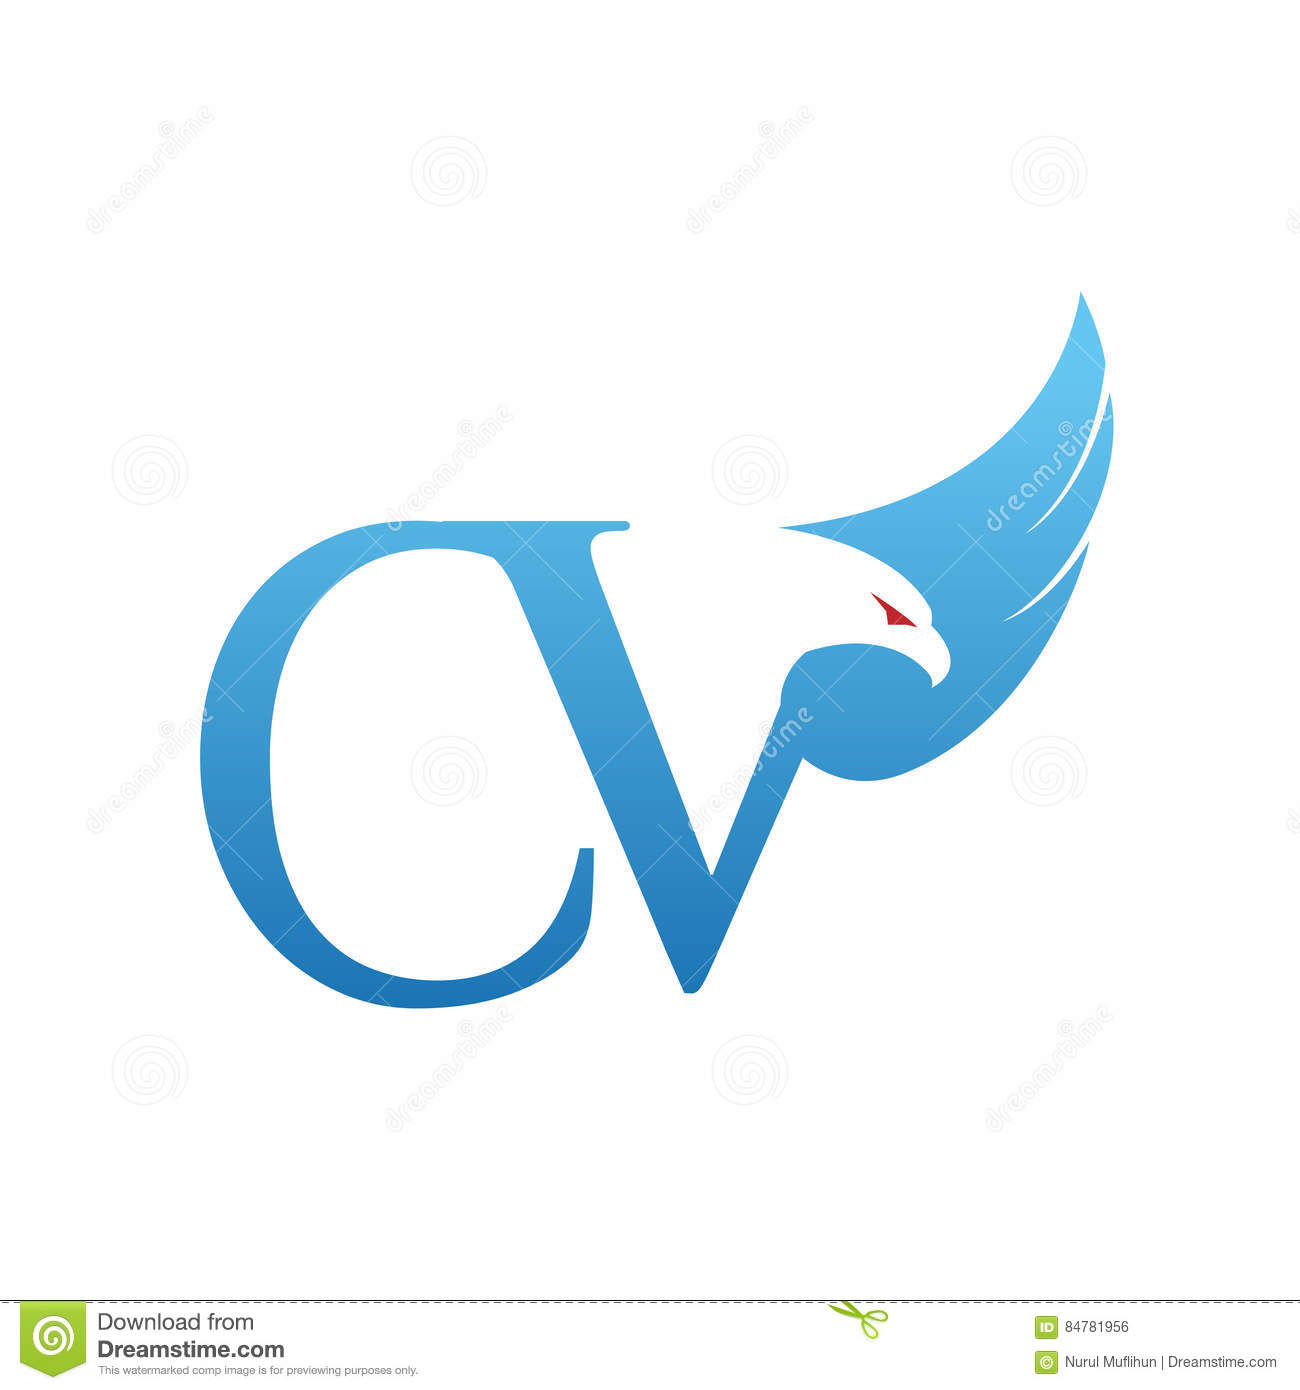 logo bleu de cv de hawk initial de vecteur illustration de